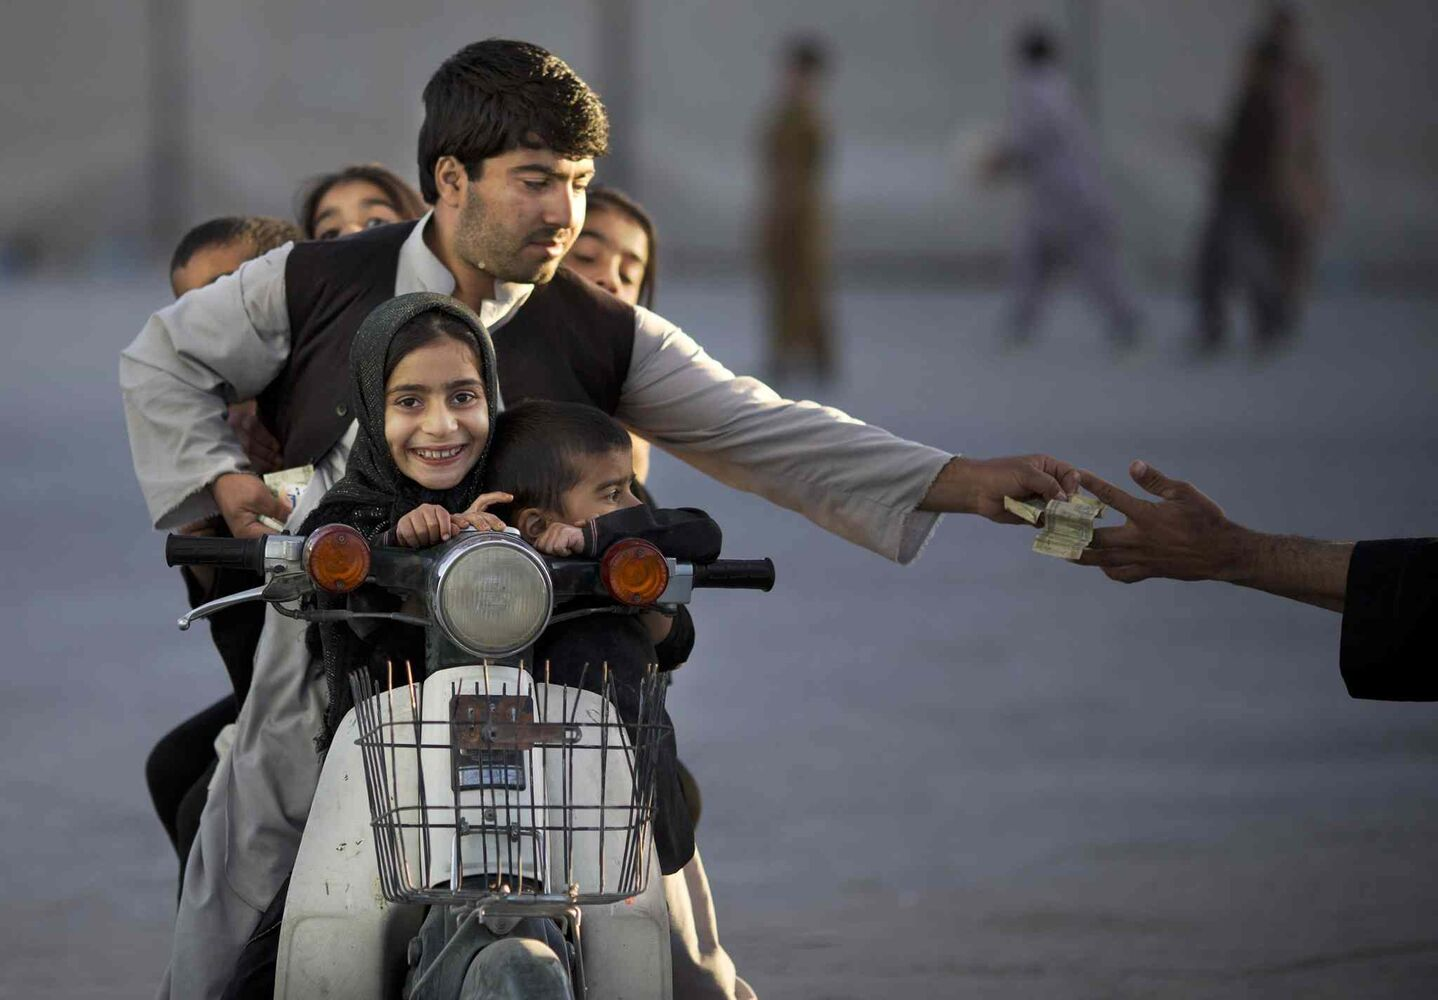 Nov. 1, 2013: An Afghan man with his five children on his motorbike pays money to enter a park in Kandahar, southern Afghanistan.  (Anja Niedringhaus / The Associated Press)